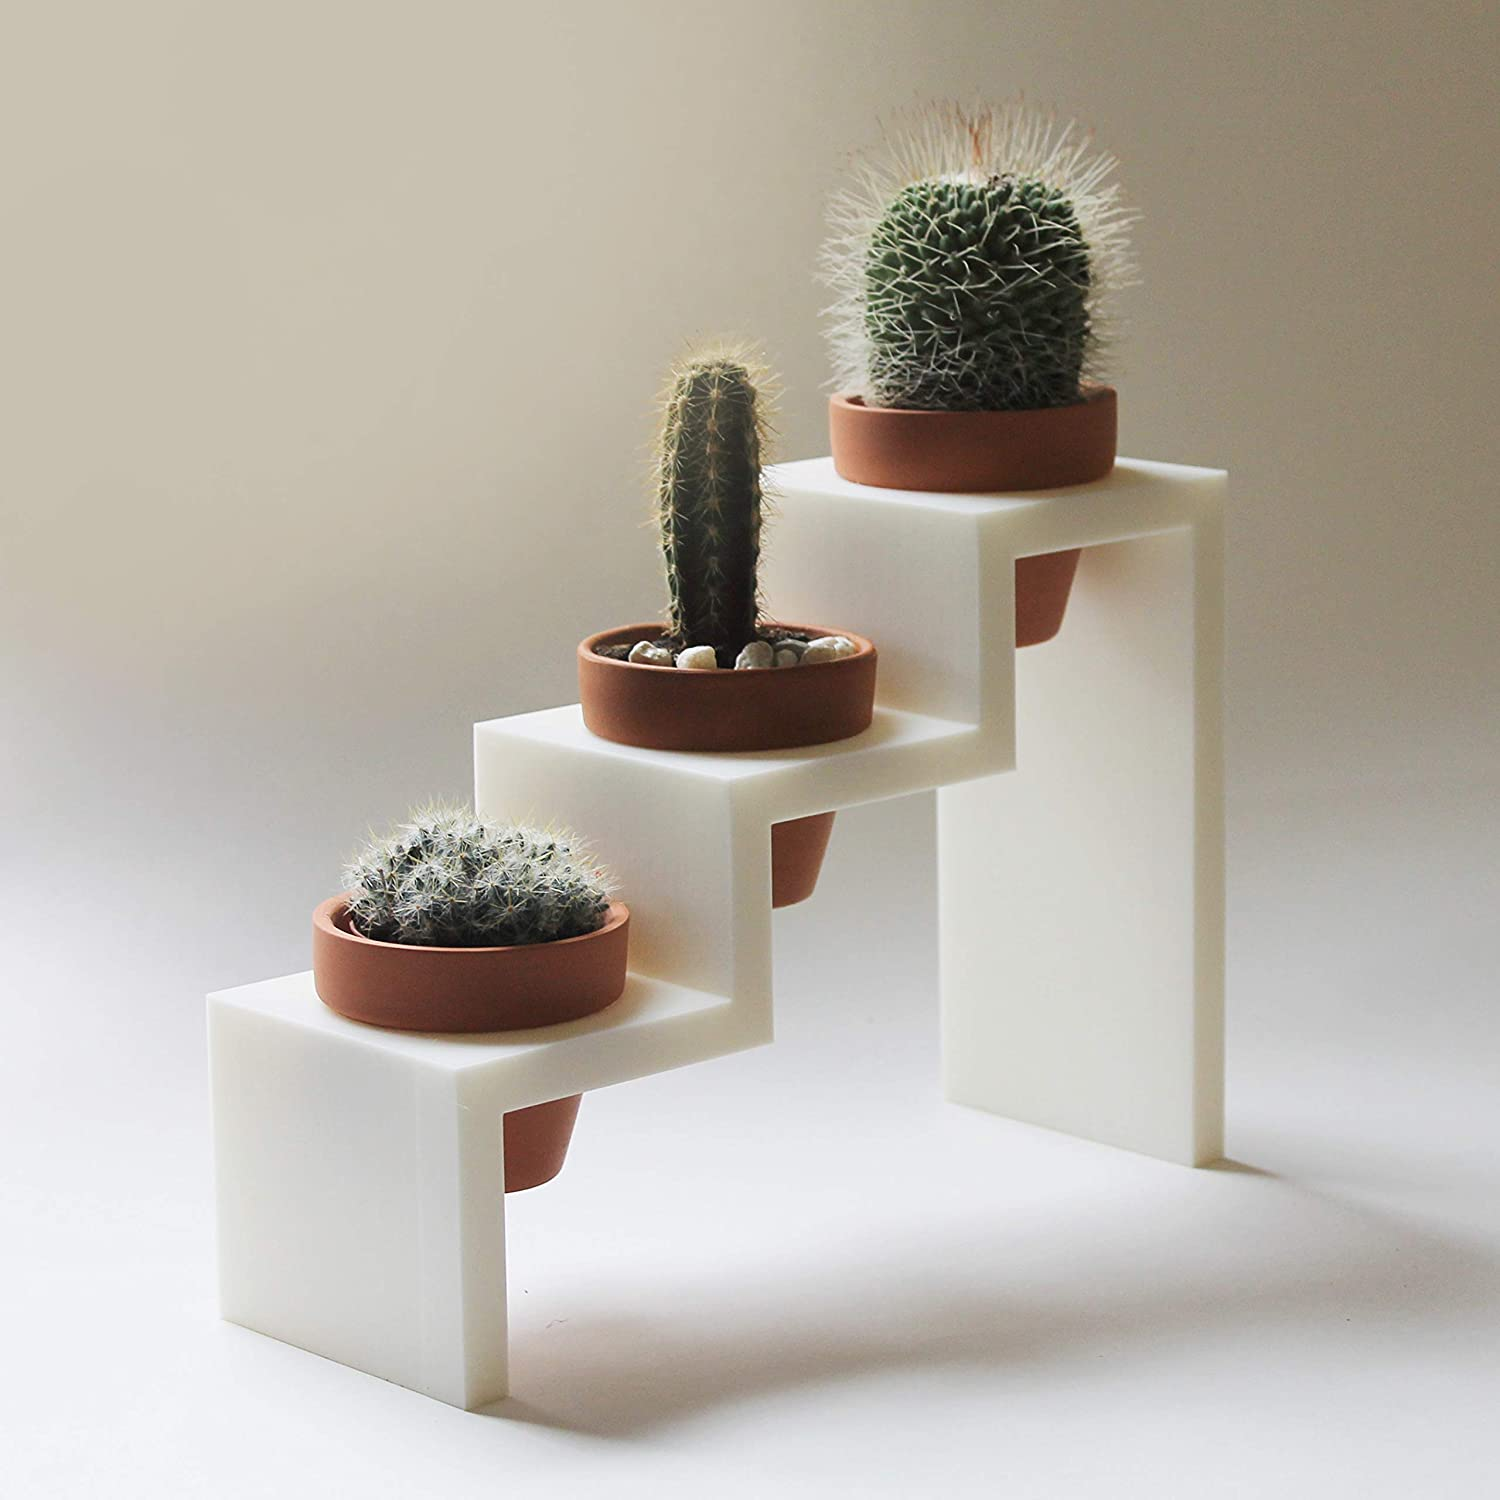 clay pot planter with stand Amazon.com: 1 Step Planter + 1 Clay Pots/Planter/Plant stand/Plant